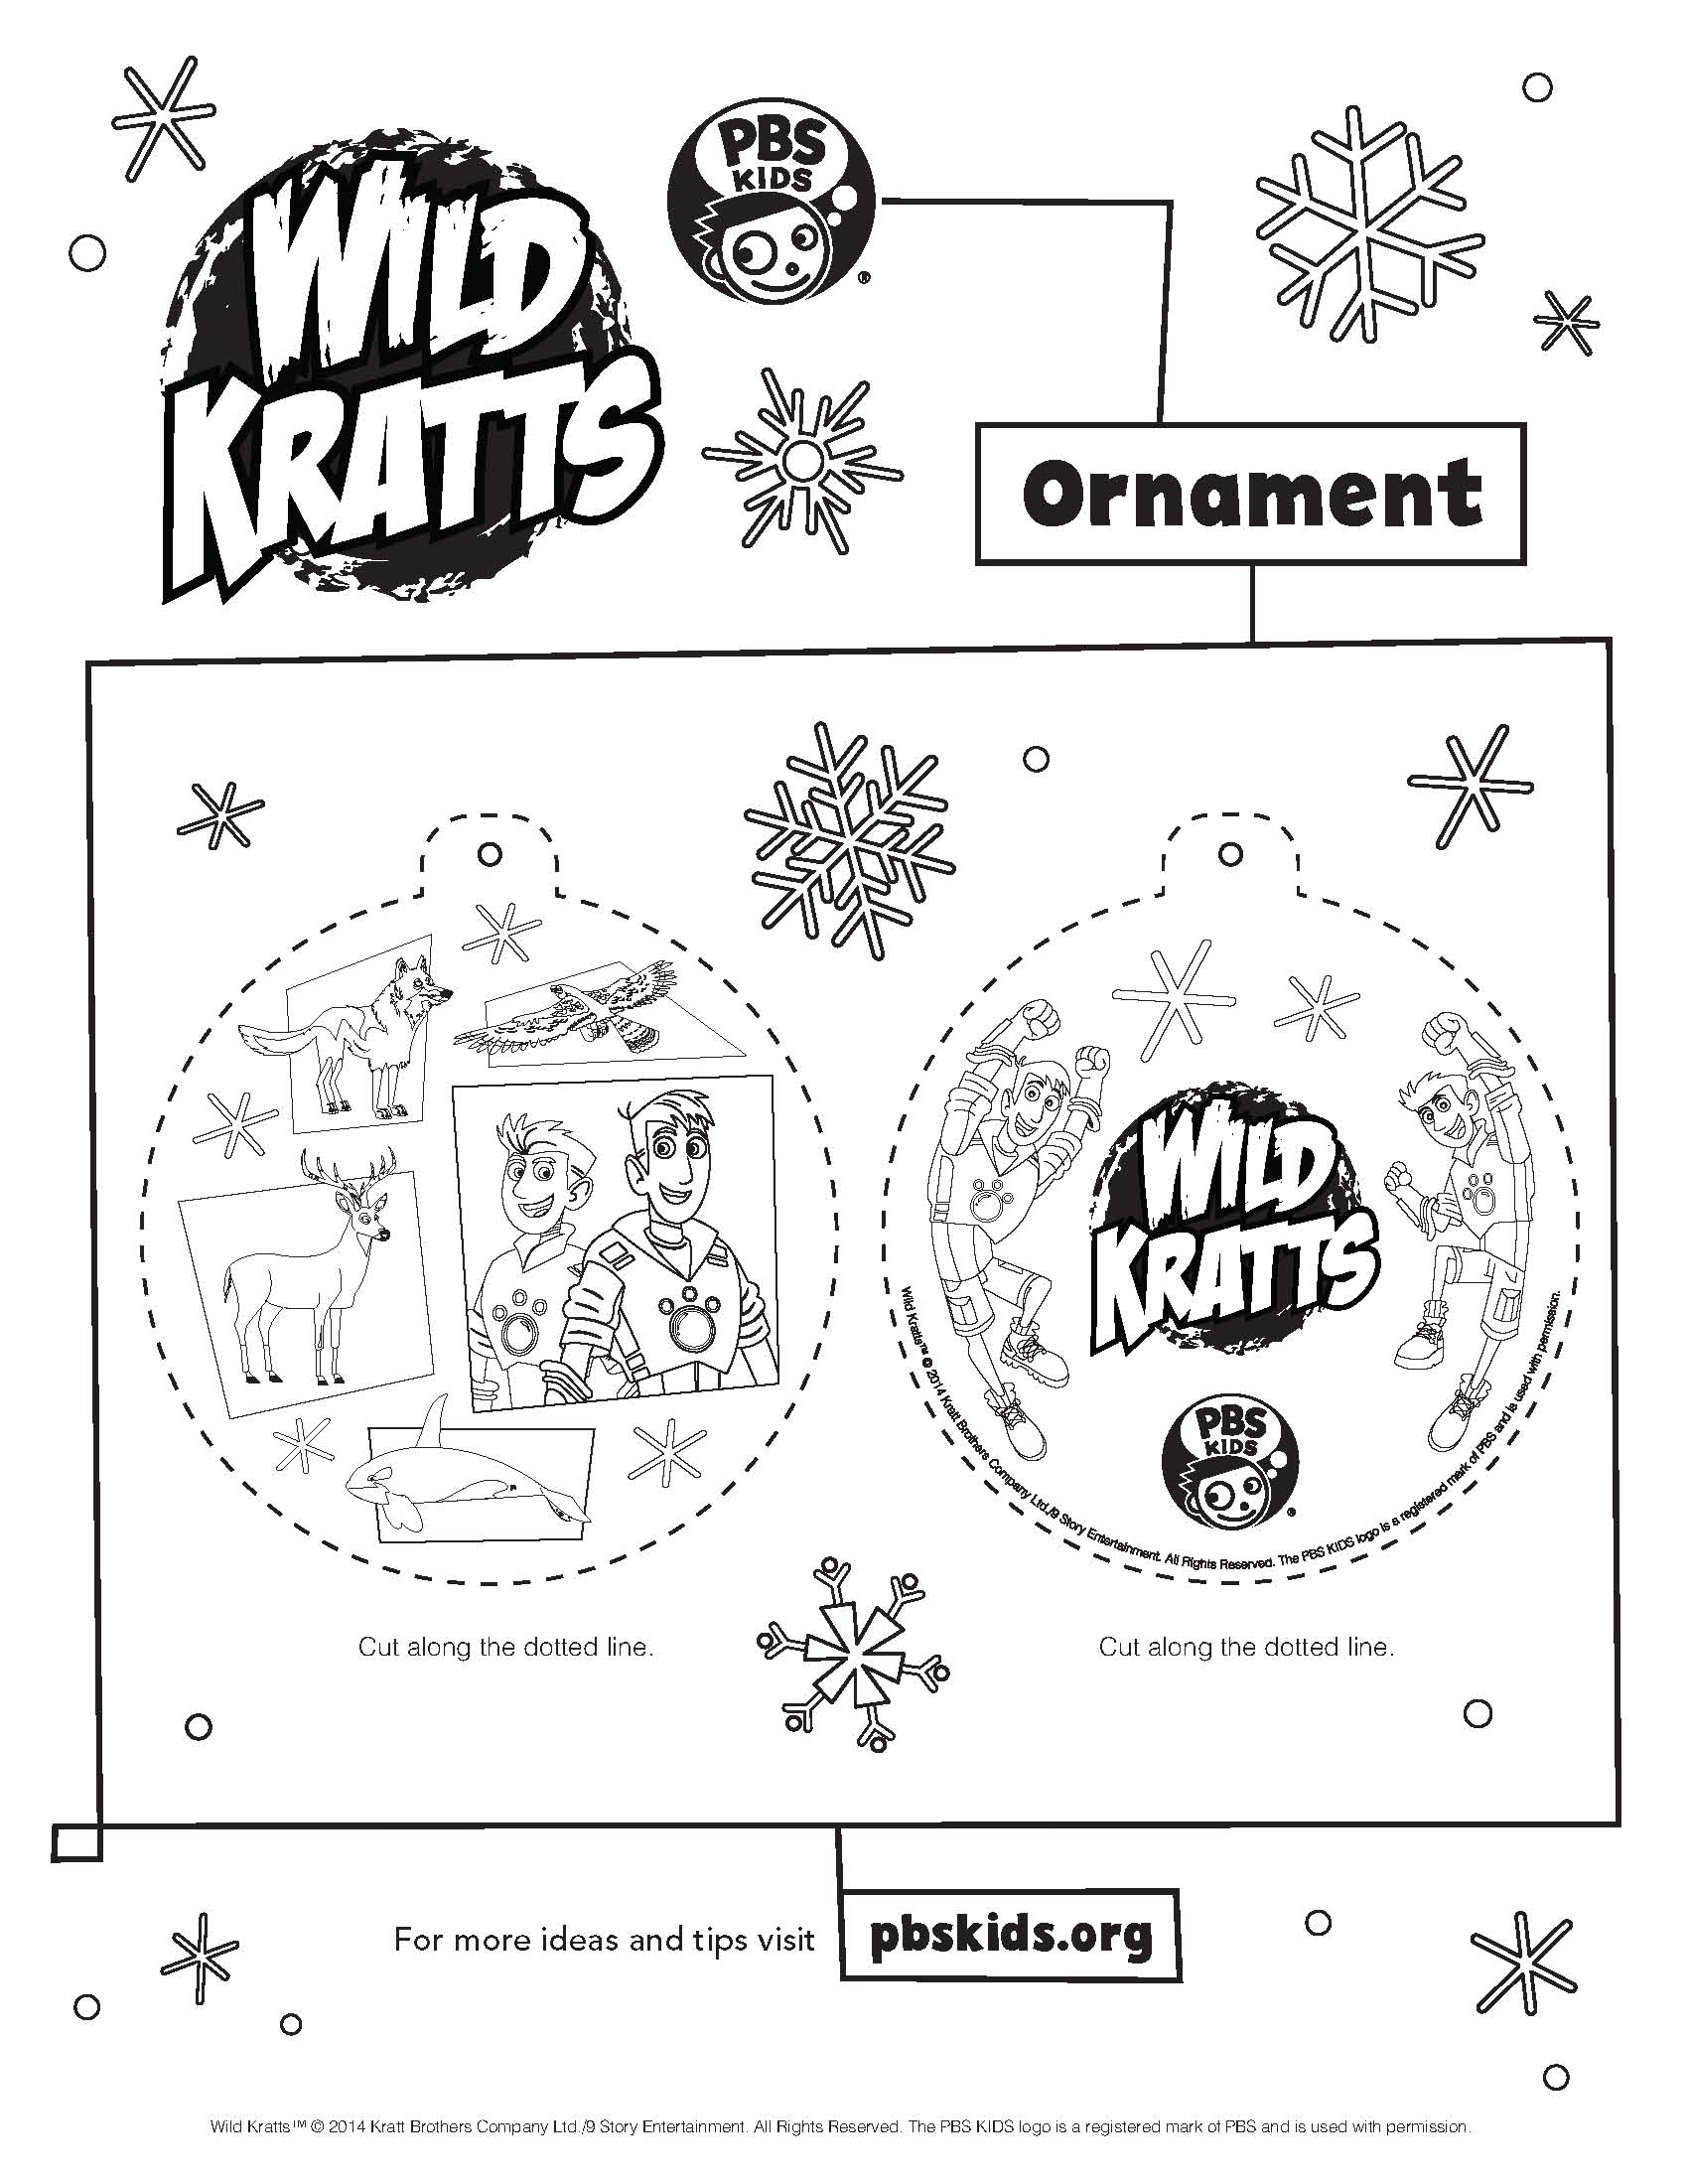 Wild kratts ornament_Page_2